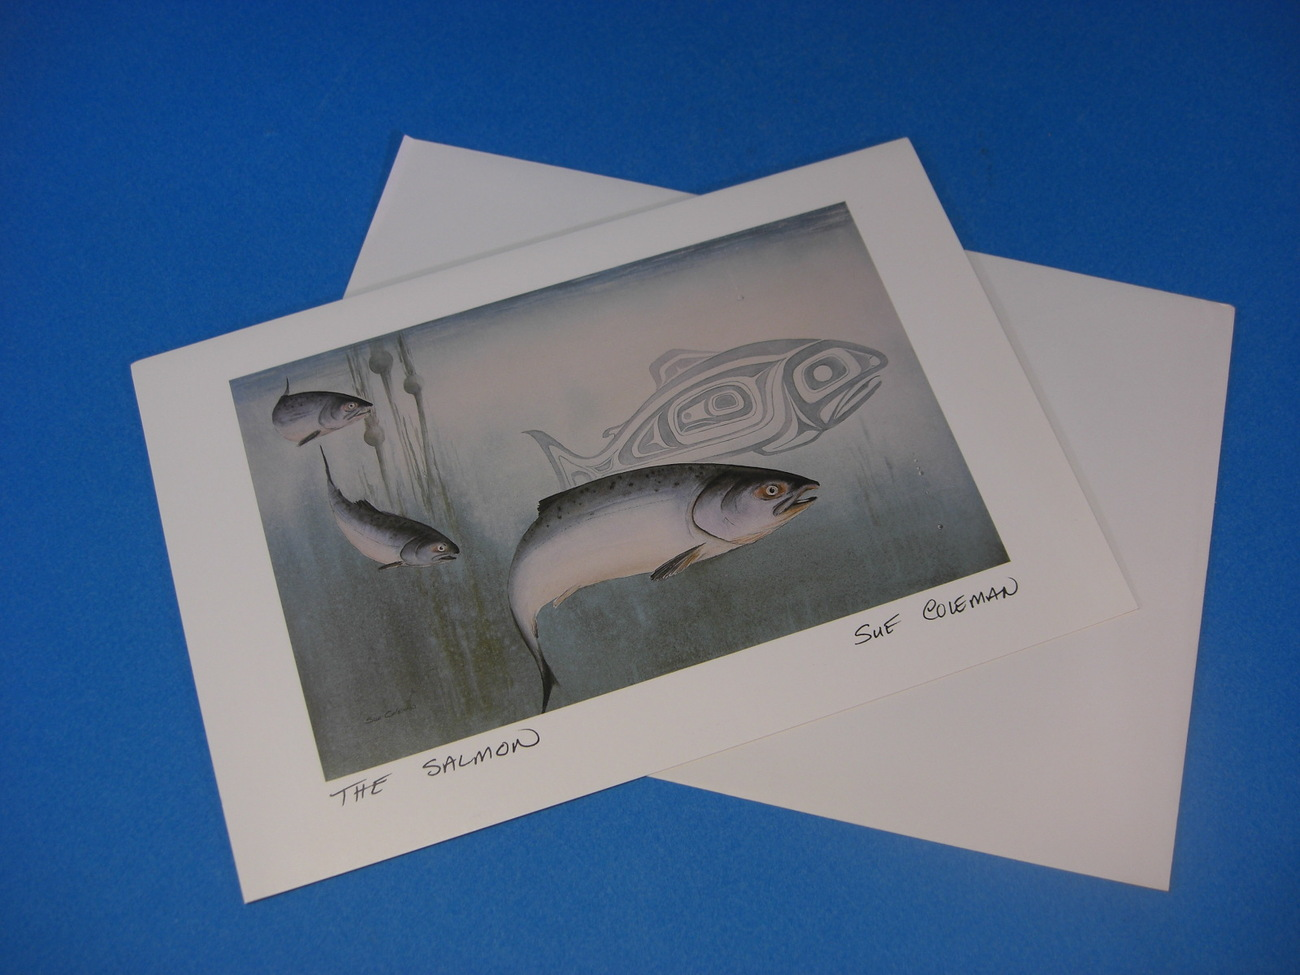 THE SALMON Art Card by Susan Coleman